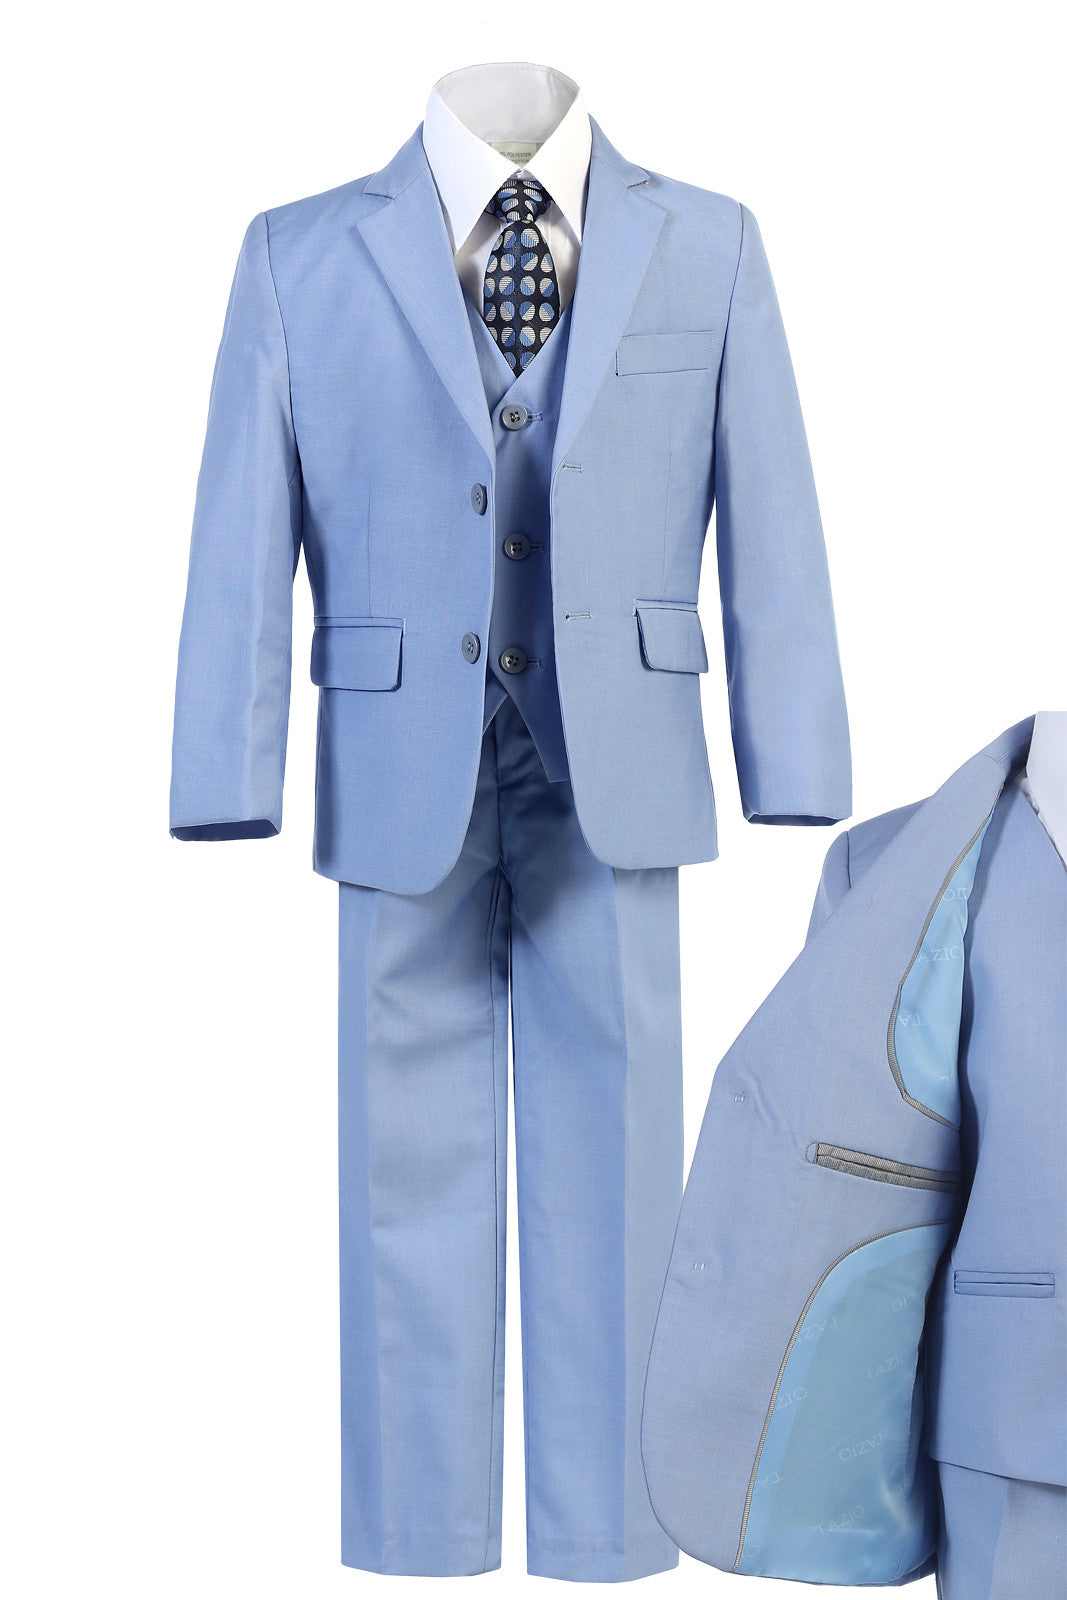 Unotux Sky Blue Boys Suits